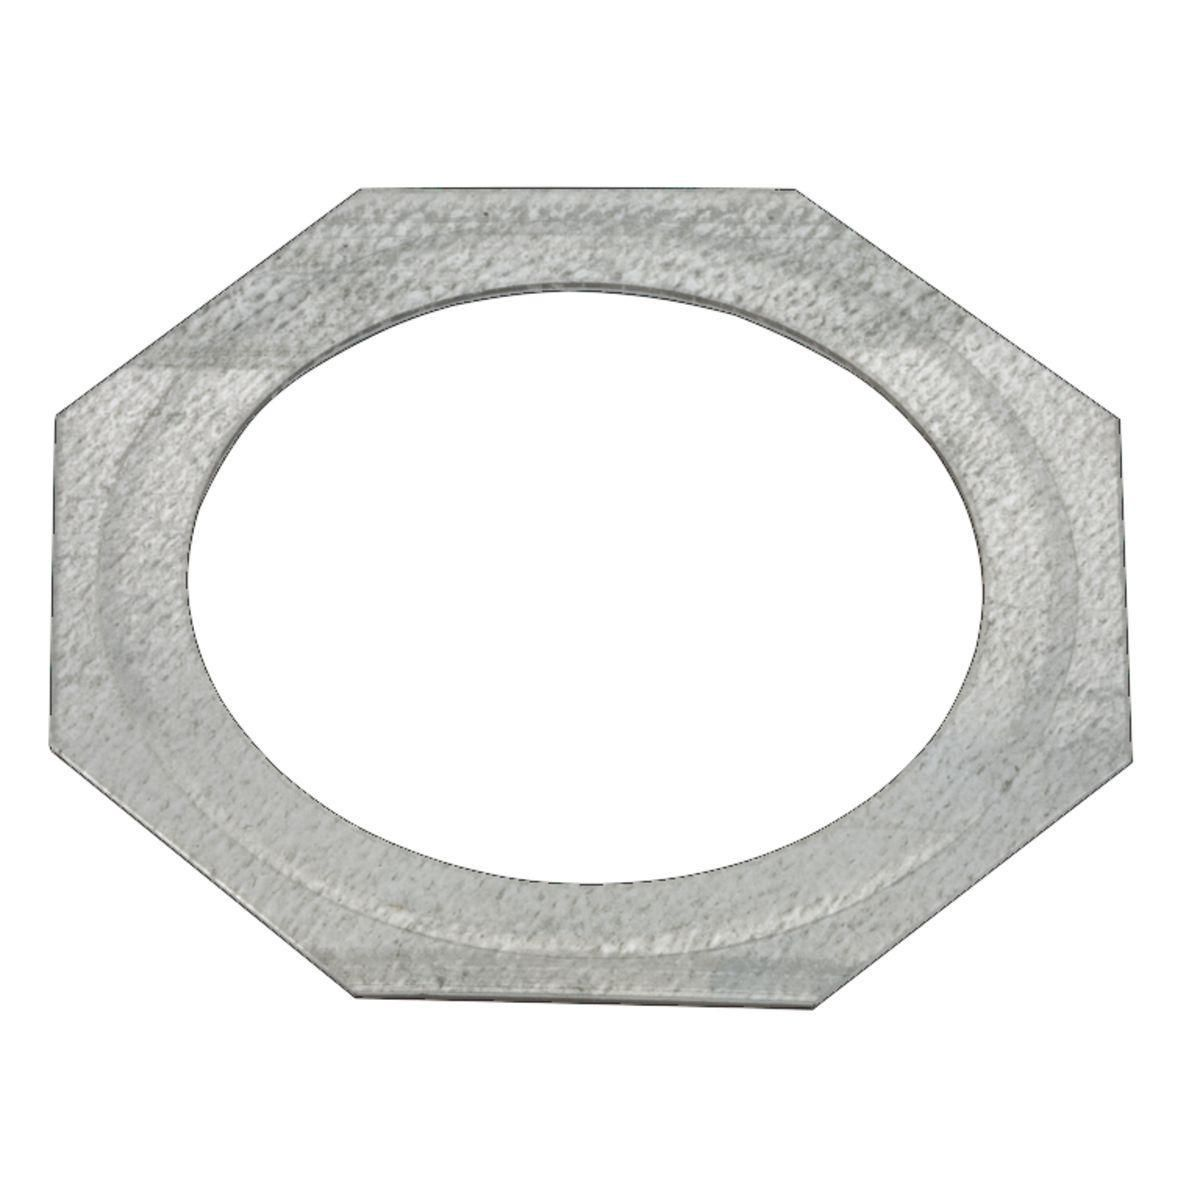 REDUCING WASHER 4 IN TO 3 IN STEEL